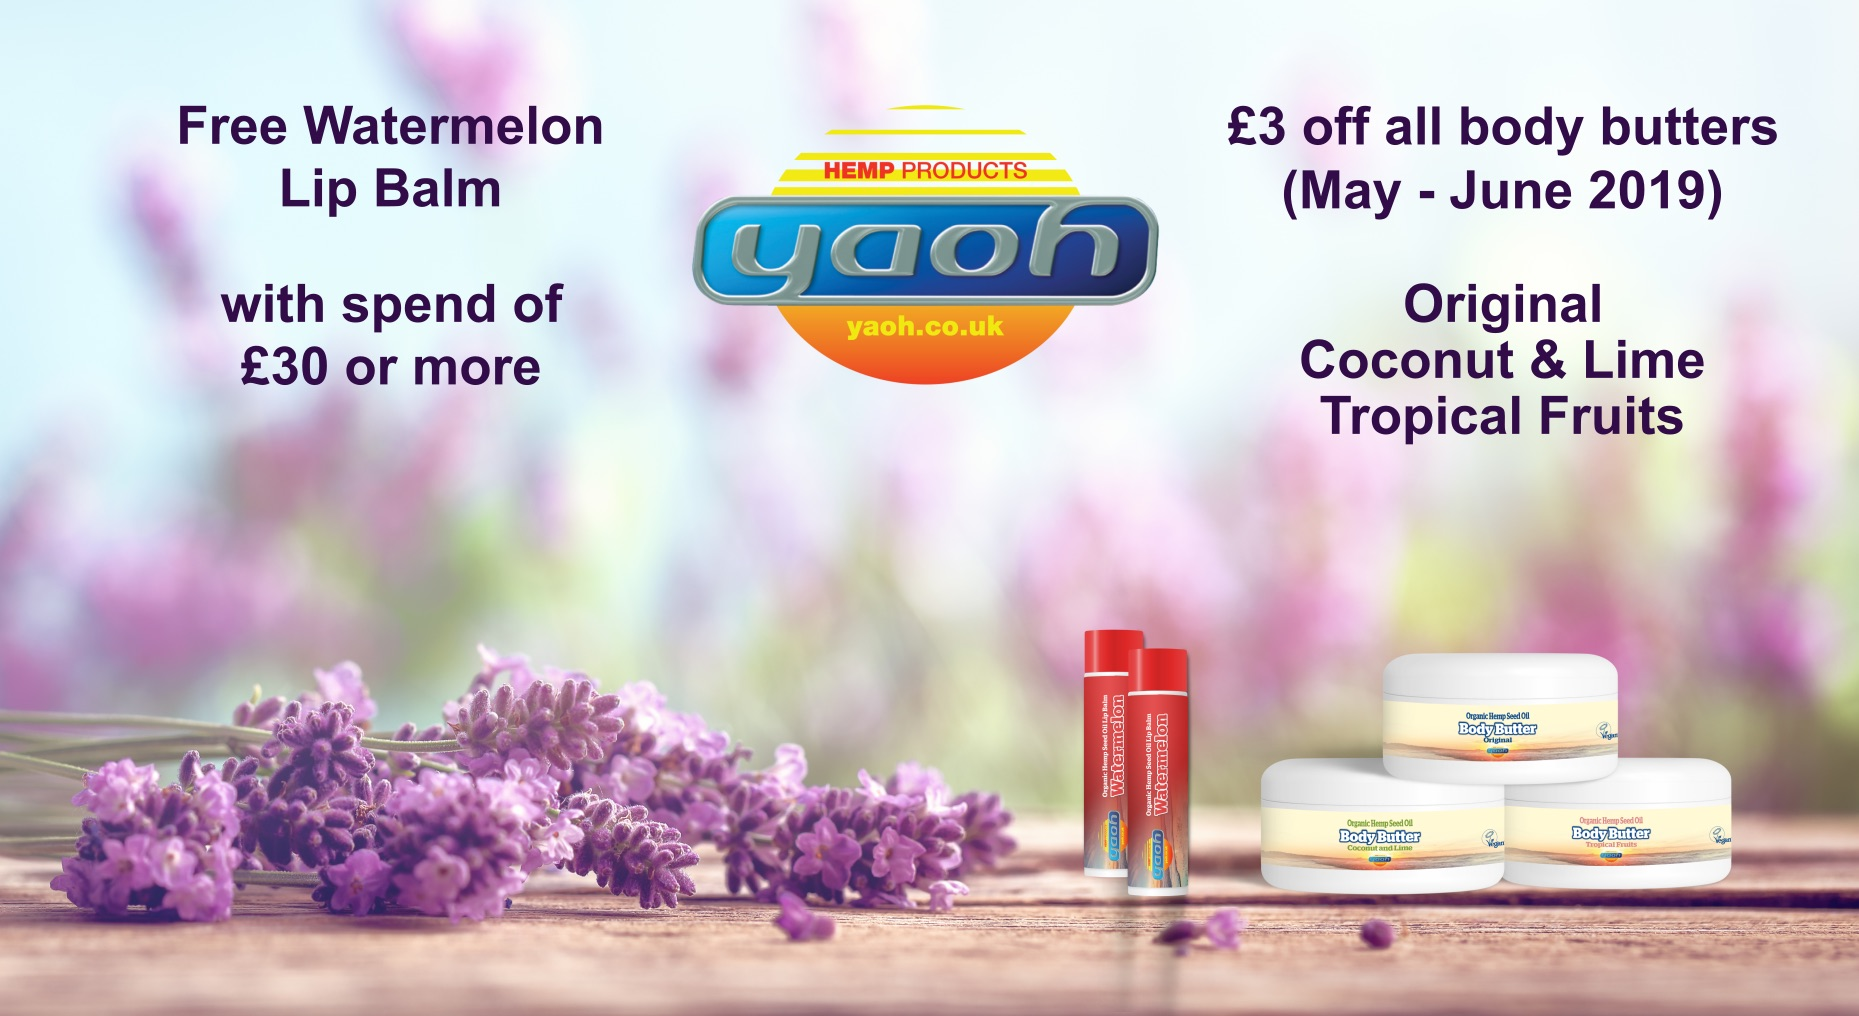 Sun's out – just right for Yaoh's refreshing Watermelon Lip Balms, tantalising Body Butters and safe Sunscreen